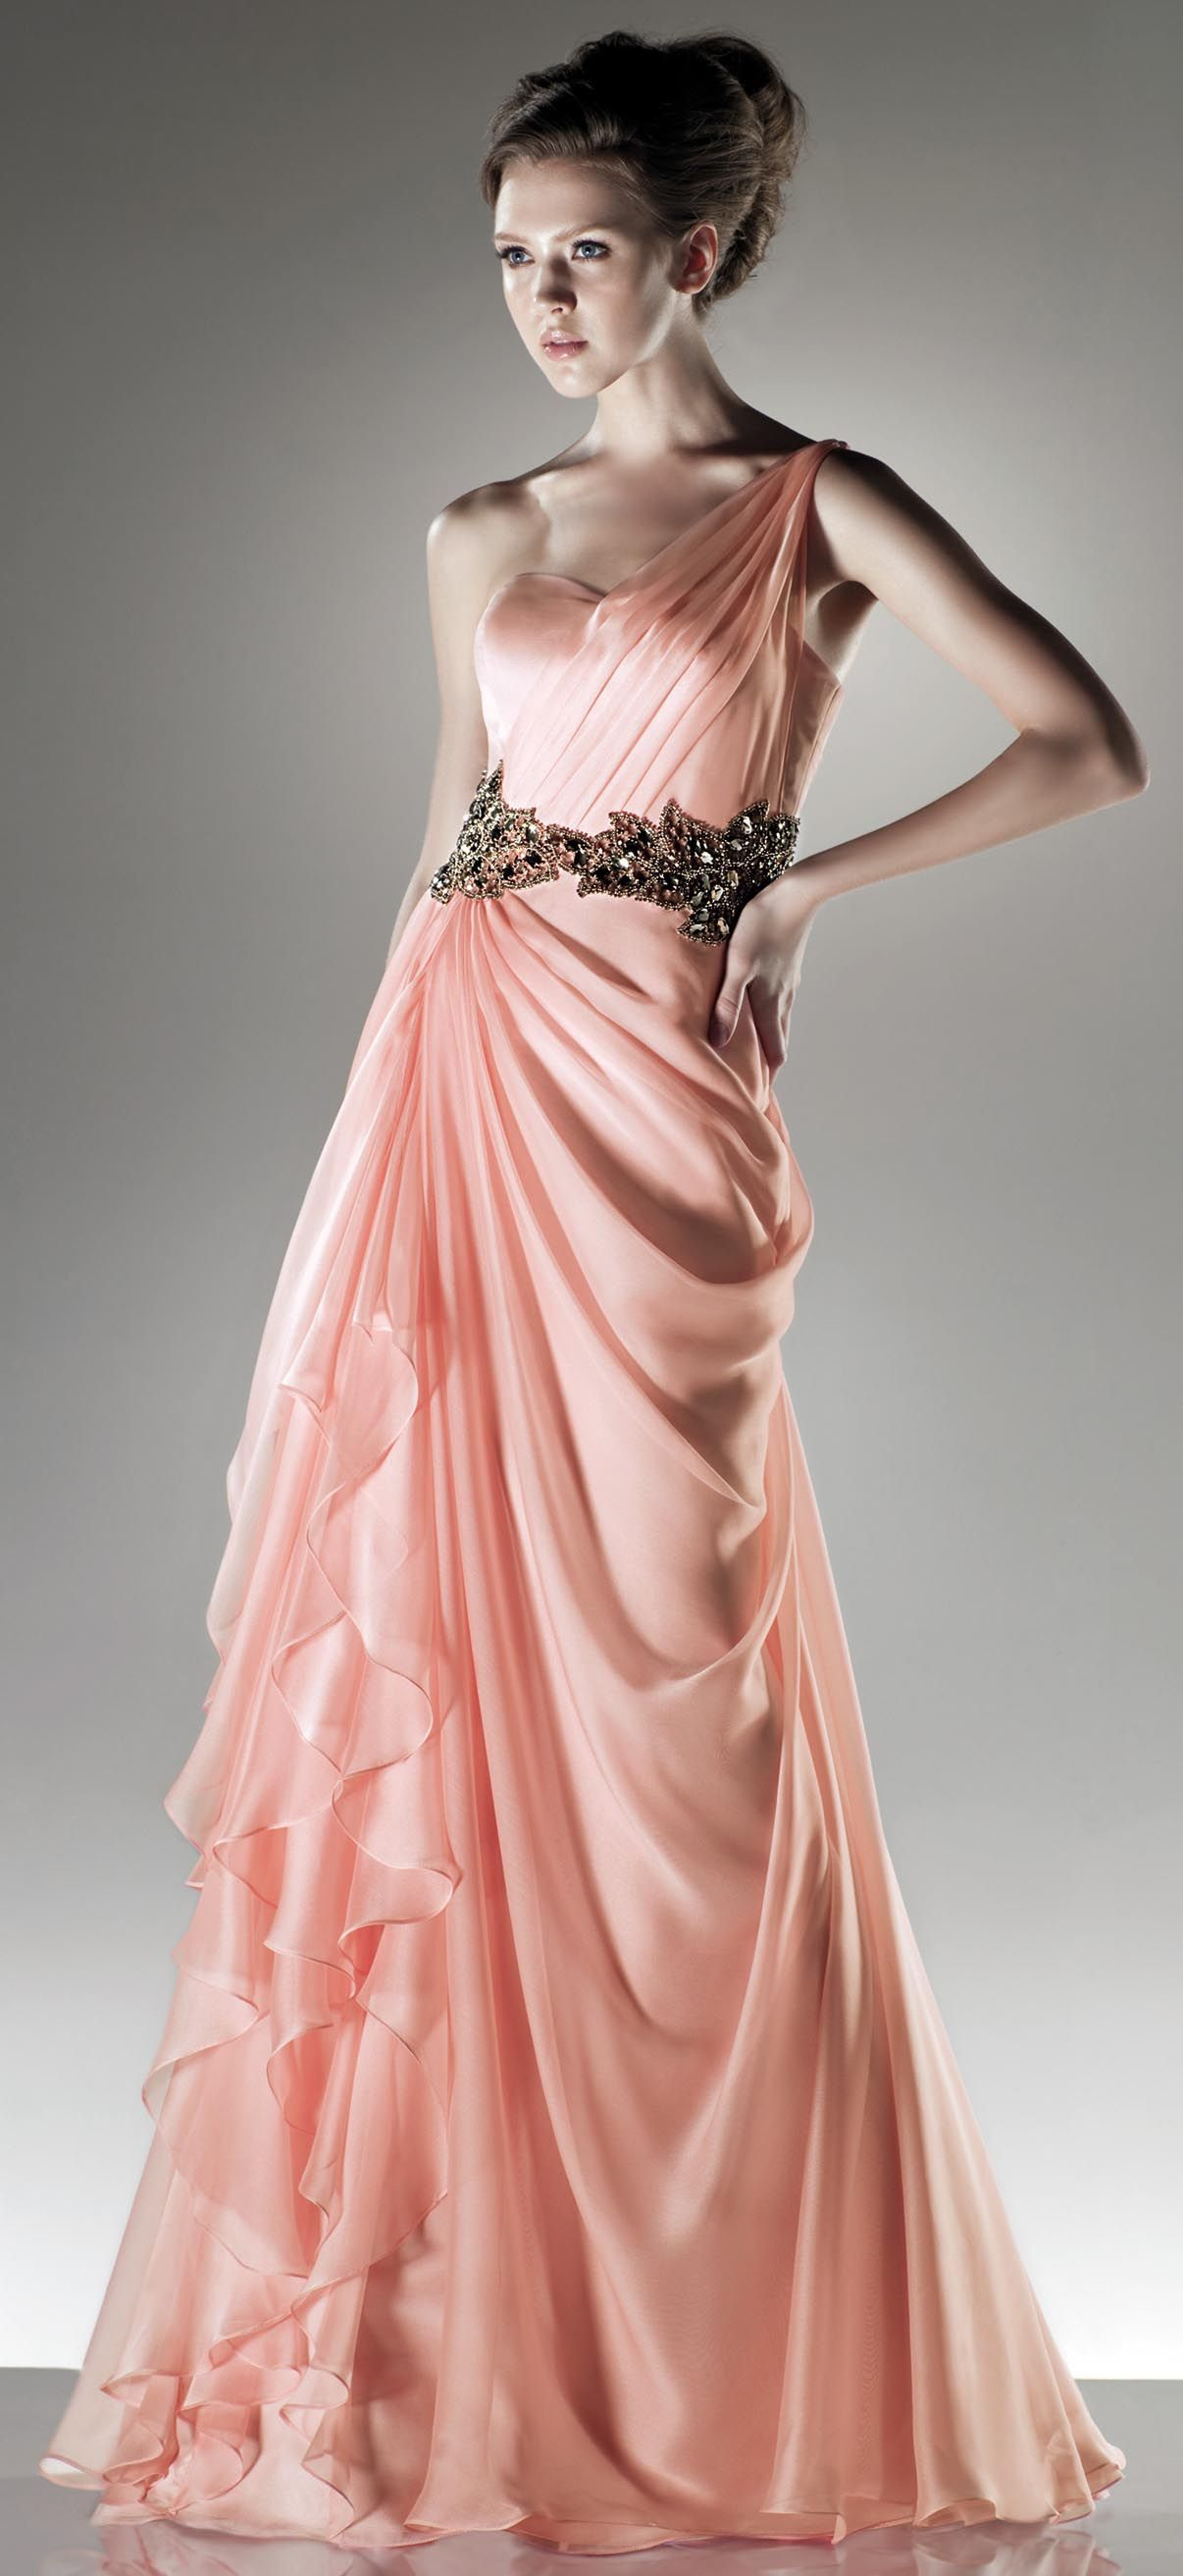 Elegant one shoulder chiffon gown all things peachy pink